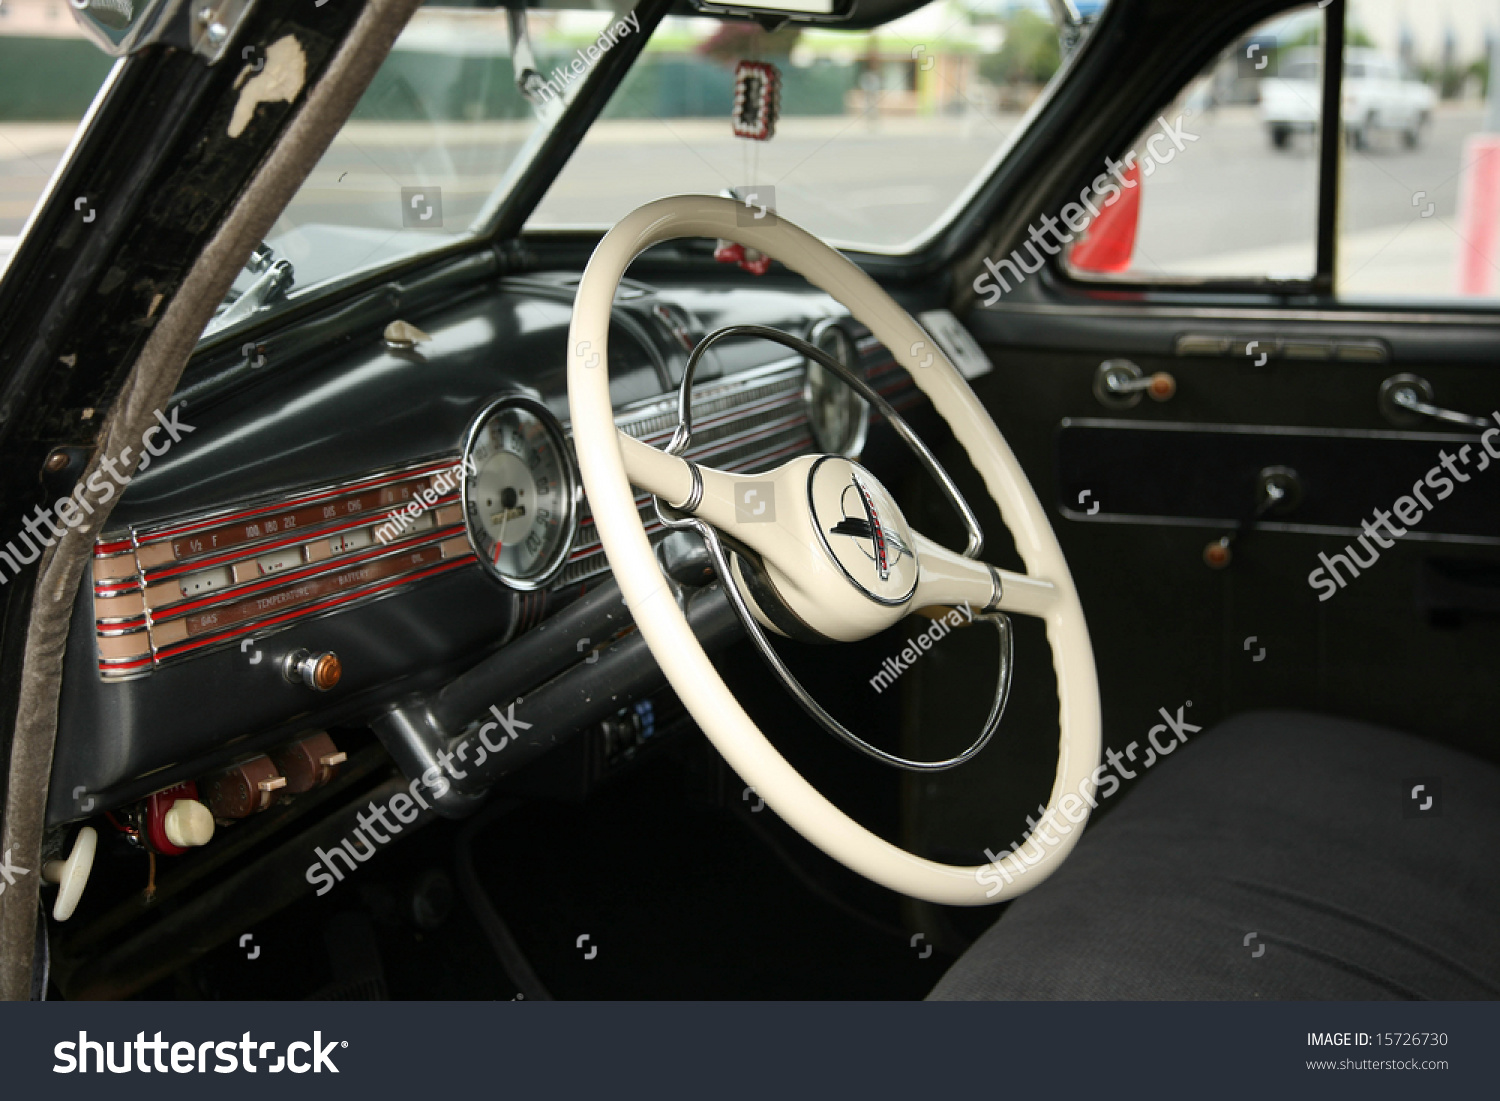 1941 chevy super delux antique car interior stock photo 15726730 shutterstock. Black Bedroom Furniture Sets. Home Design Ideas